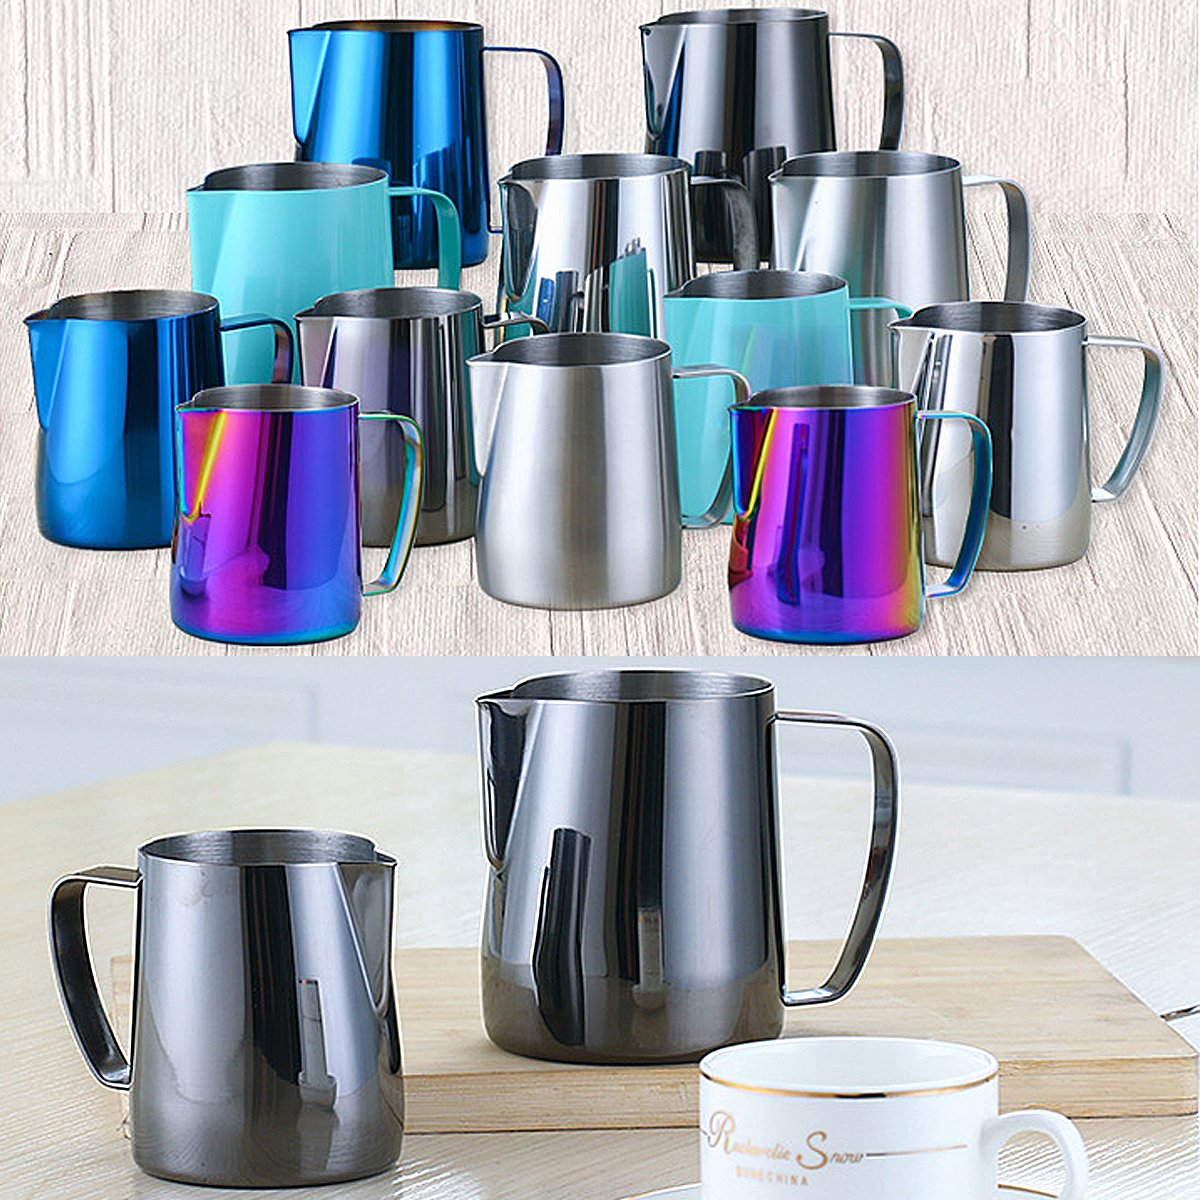 8th team Stainless Steel Milk Frothing Pitcher 350ml/600ml - Perfect for Espresso Machines, Milk Frothers, Latte Art (colorful, 350ml)